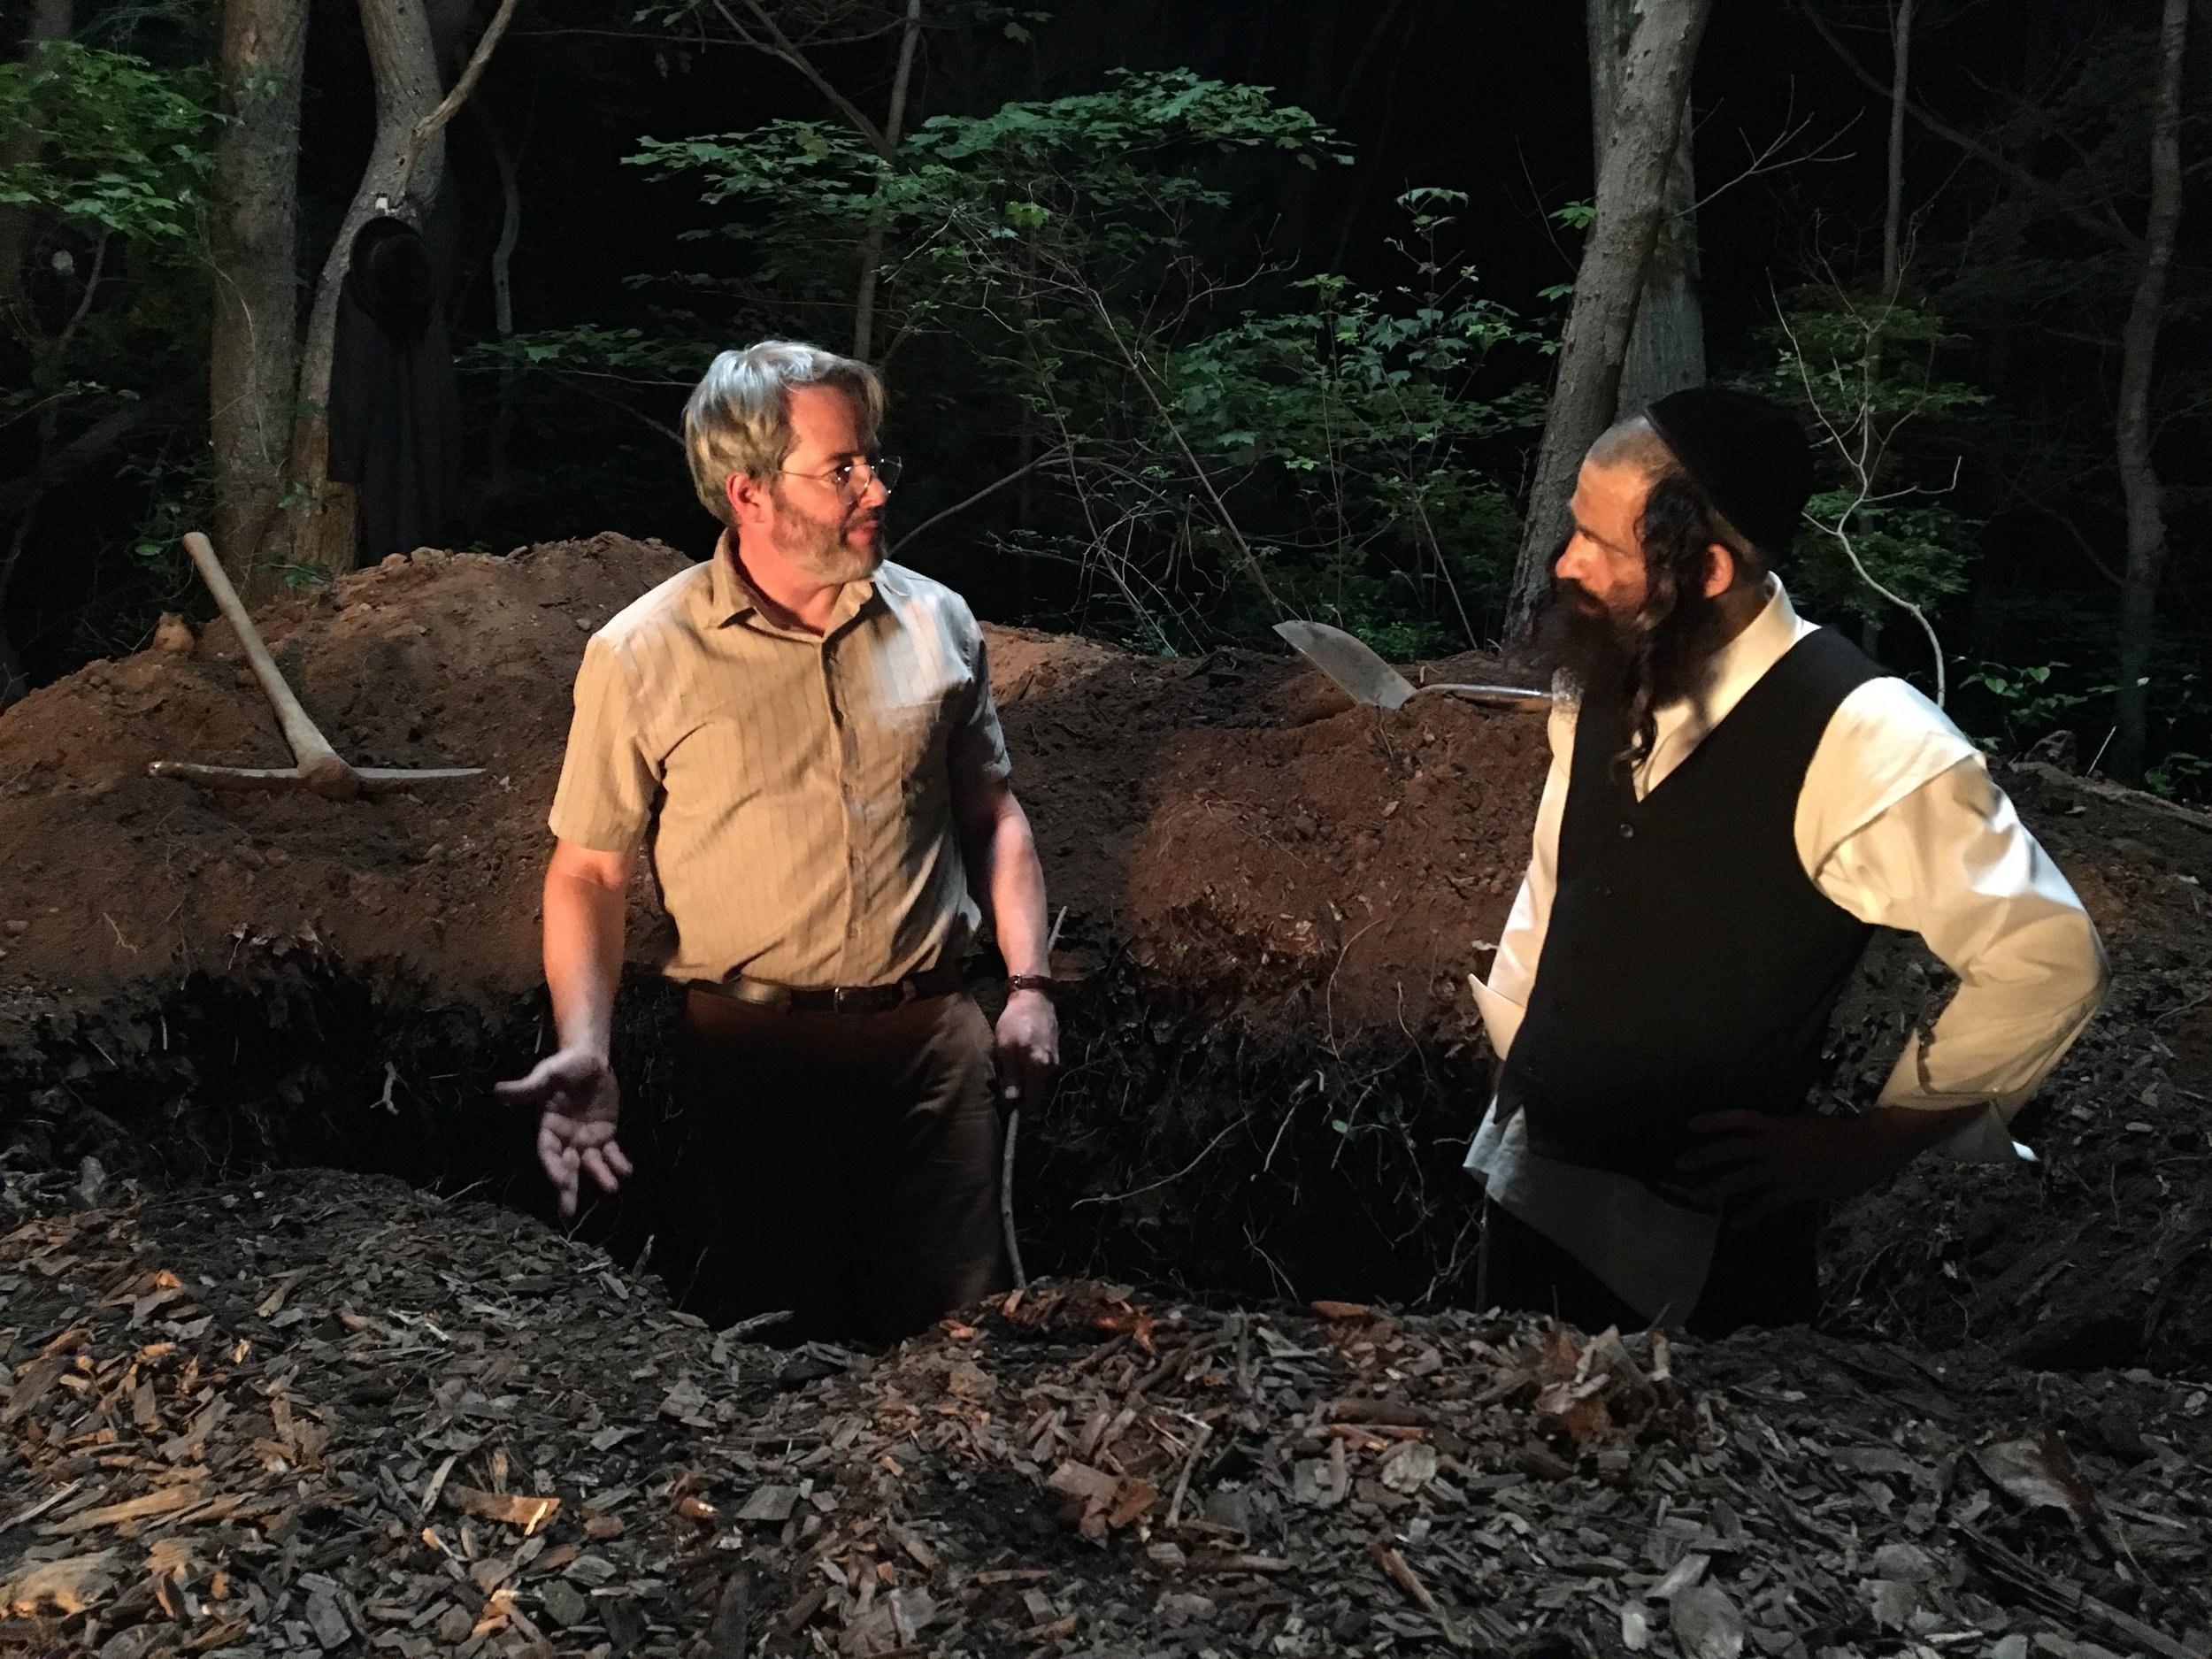 Matthew Broderick as Albert, a community college science teacher, and Géza Röhrig as Shmuel, a widowed Hasidic cantor, deliberating in their pig grave.